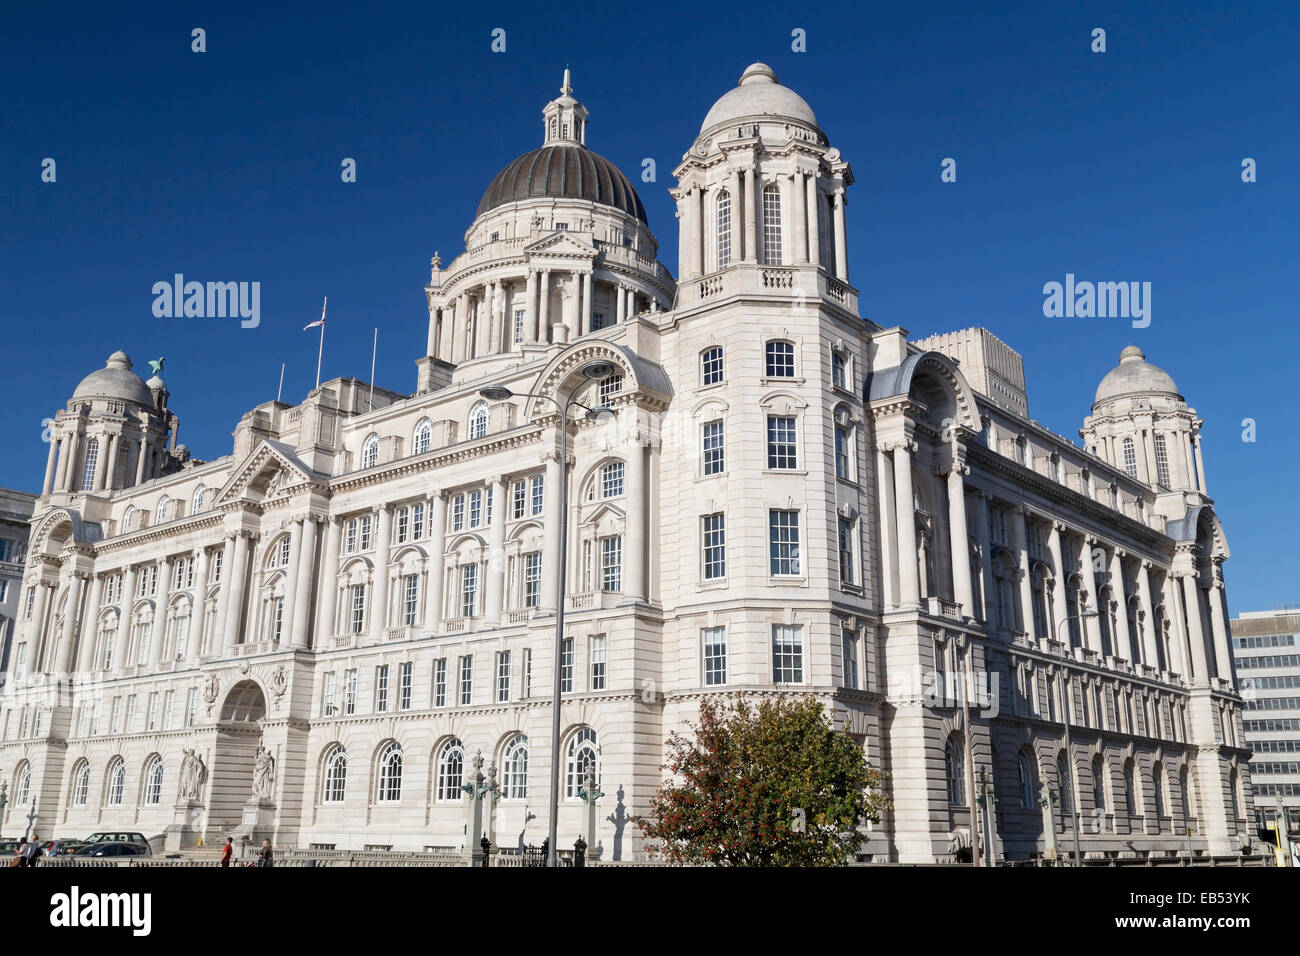 UK, Liverpool, the newly restored port of Liverpool building, beside the Royal Liver and Cunard building. - Stock Image